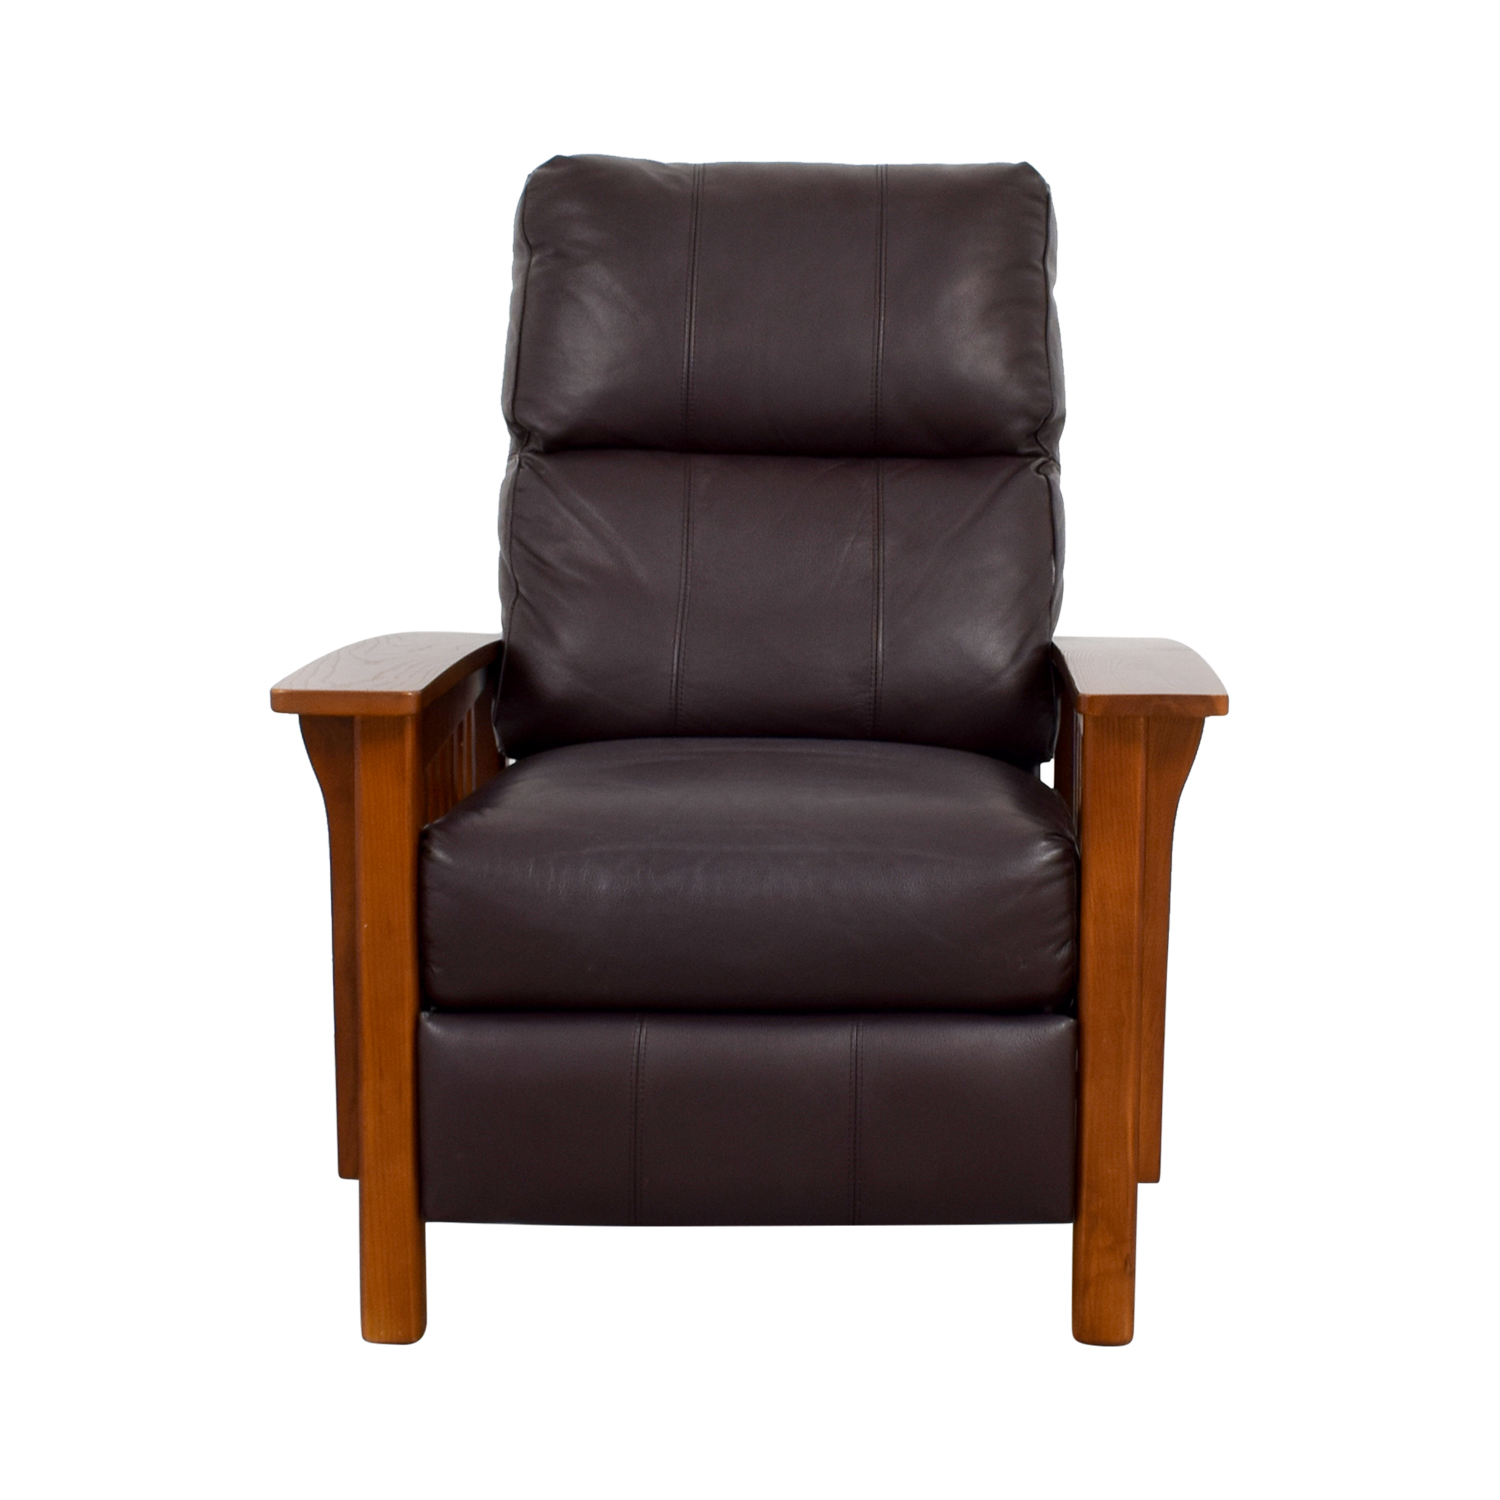 Macyu0027s Macyu0027s Harrison Brown Leather Pushback Recliner ...  sc 1 st  Furnishare & 45% OFF - Macyu0027s Macyu0027s Harrison Brown Leather Pushback Recliner ... islam-shia.org